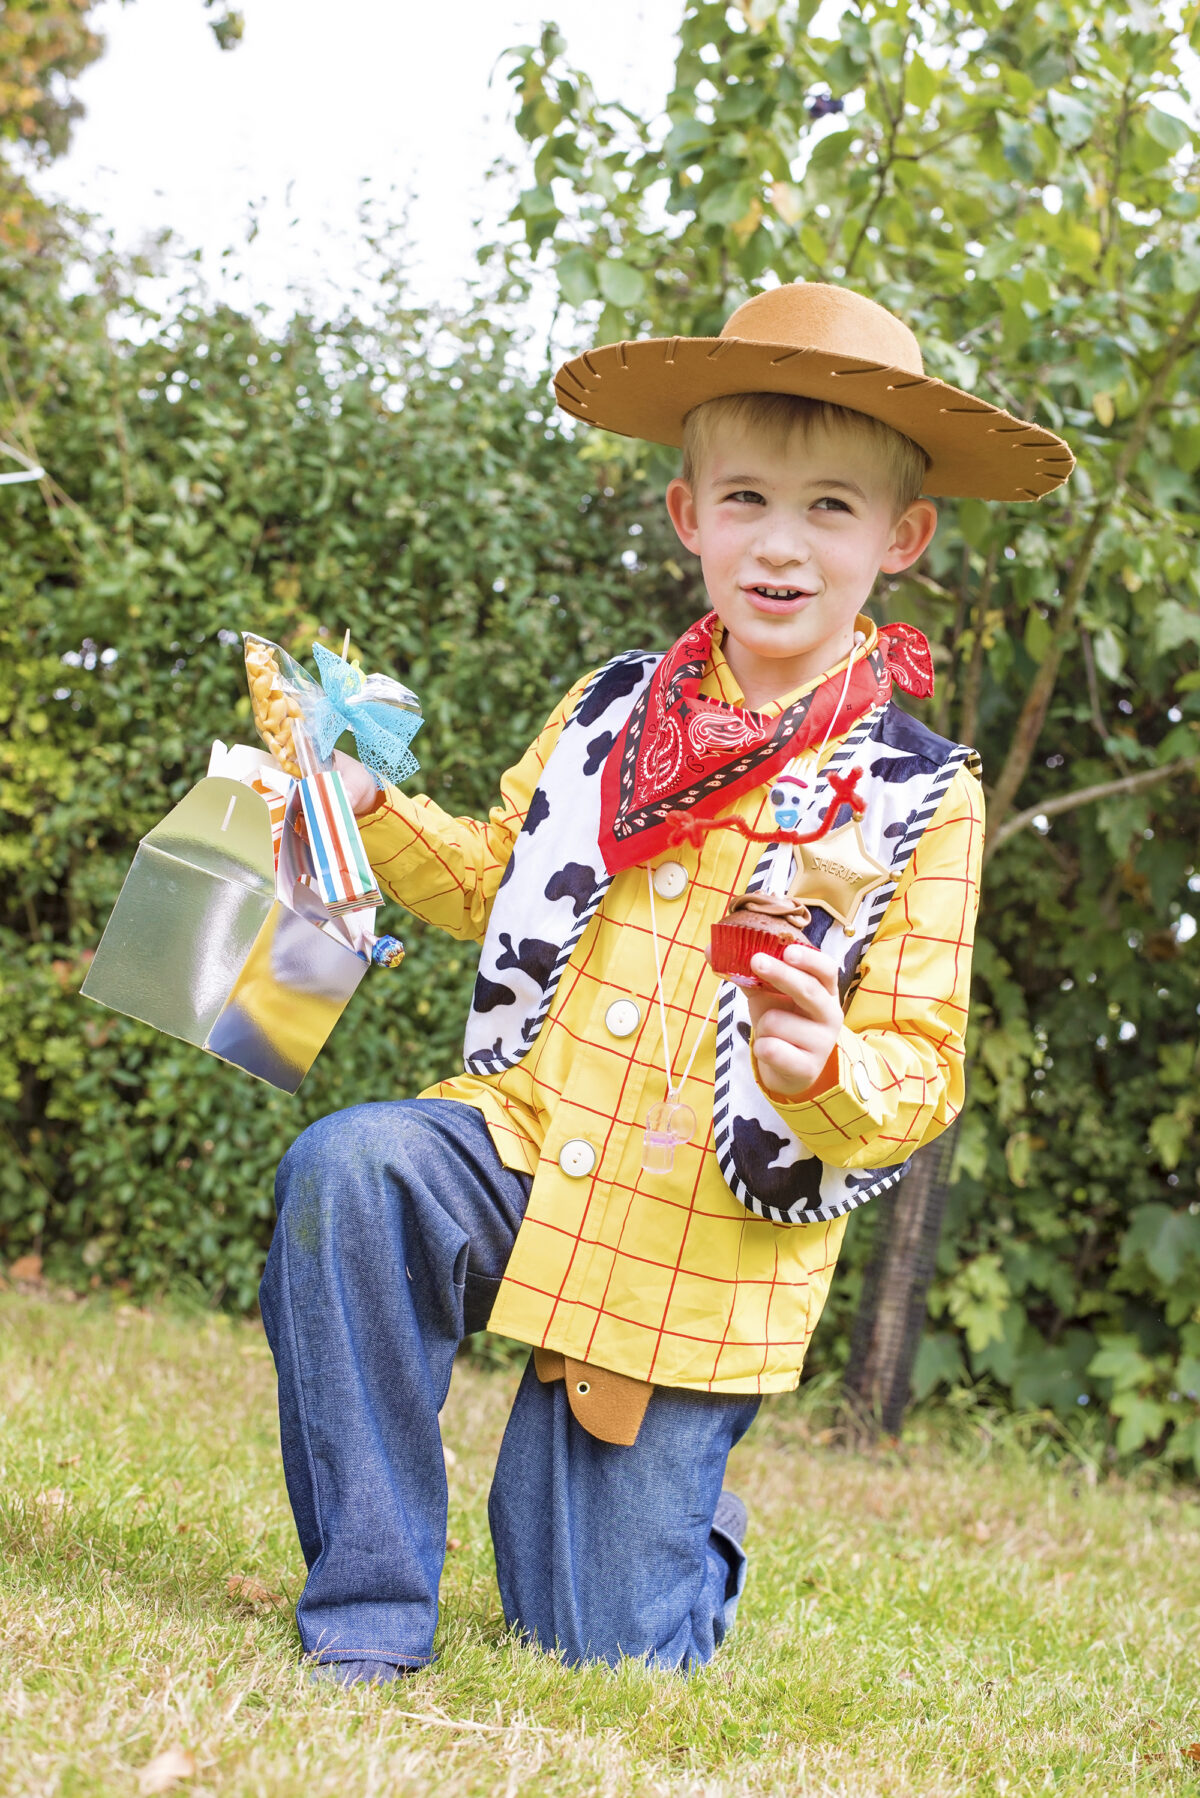 Image shows a member of the Jones Famiily dressed as Woody from Disney's Toy Story and holding a Forky cupcake in one hand and a lunchbox themed for Office Giggles McDimples in the other hand.